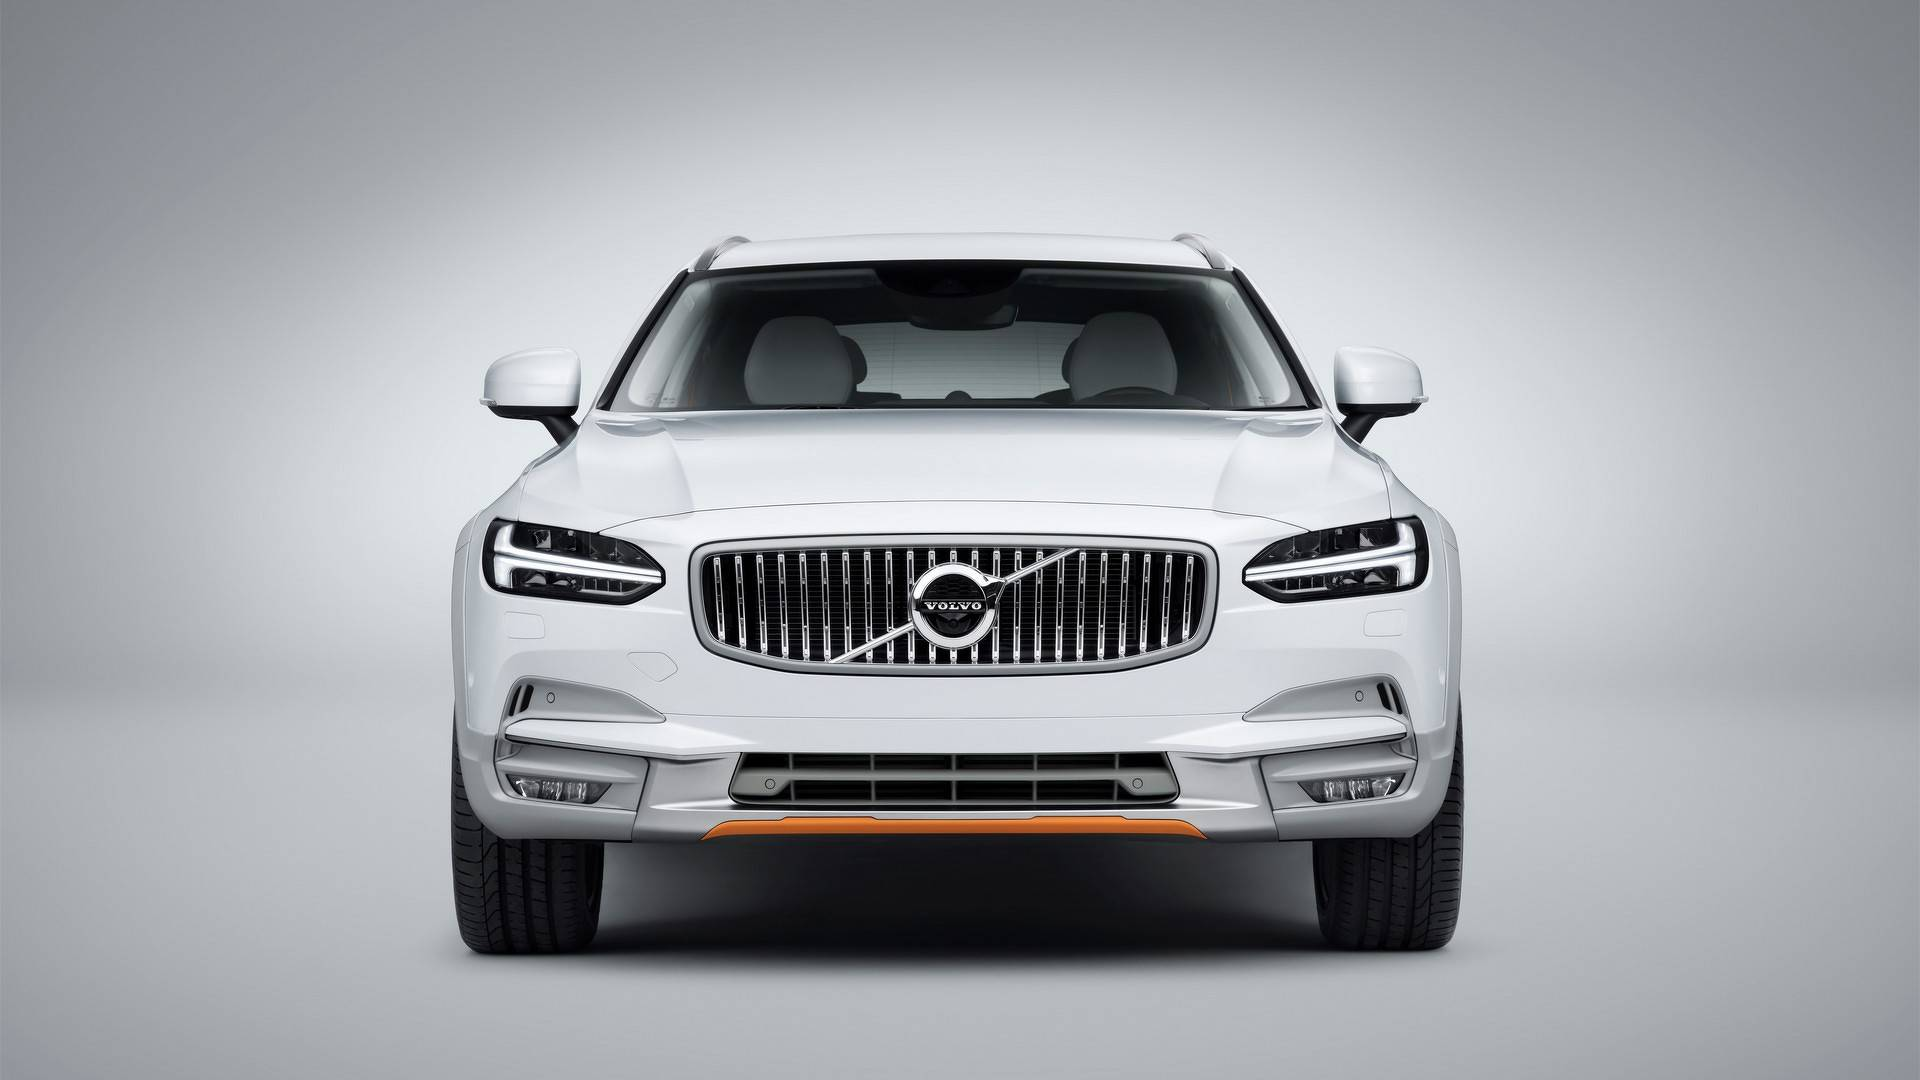 volvo v90 cross country volvo ocean race edition revealed uses interior. Black Bedroom Furniture Sets. Home Design Ideas